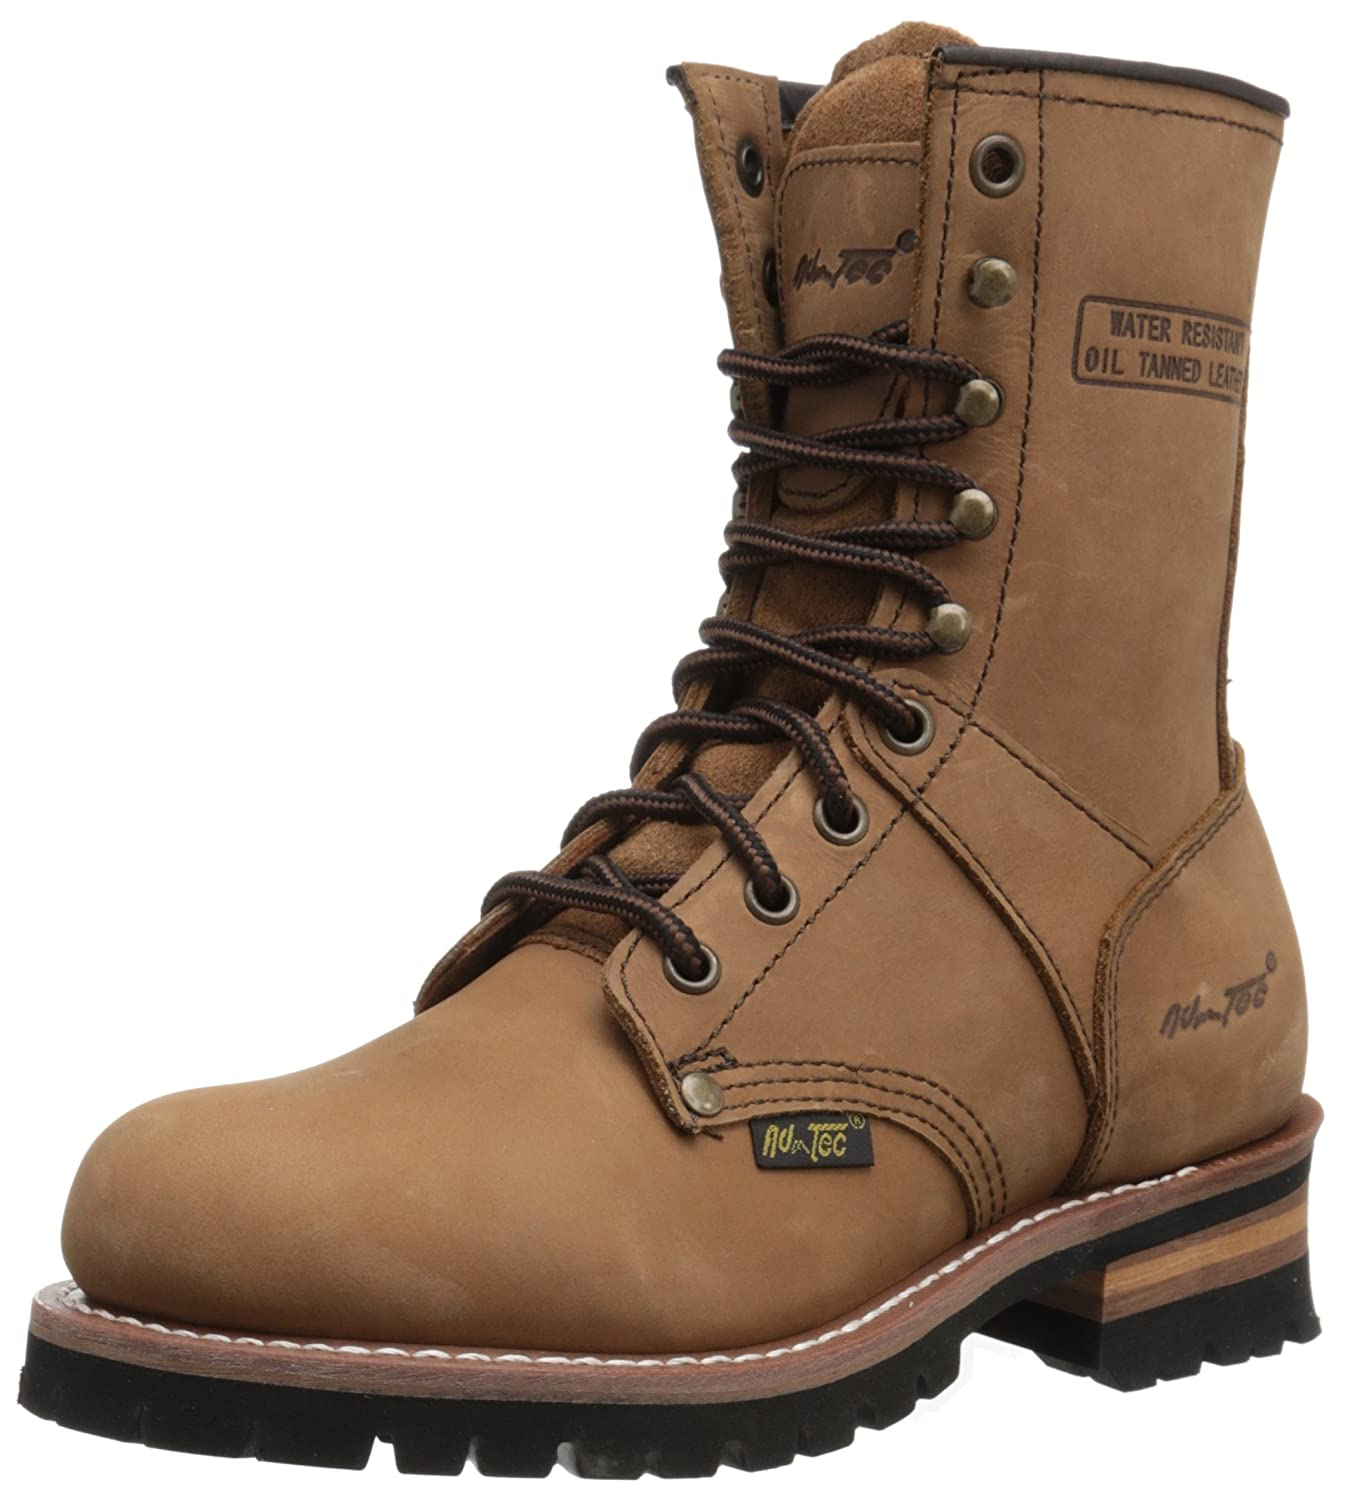 Adtec Women's 9' Logger Brown Work Boot Women' s 9 Logger Brown-W